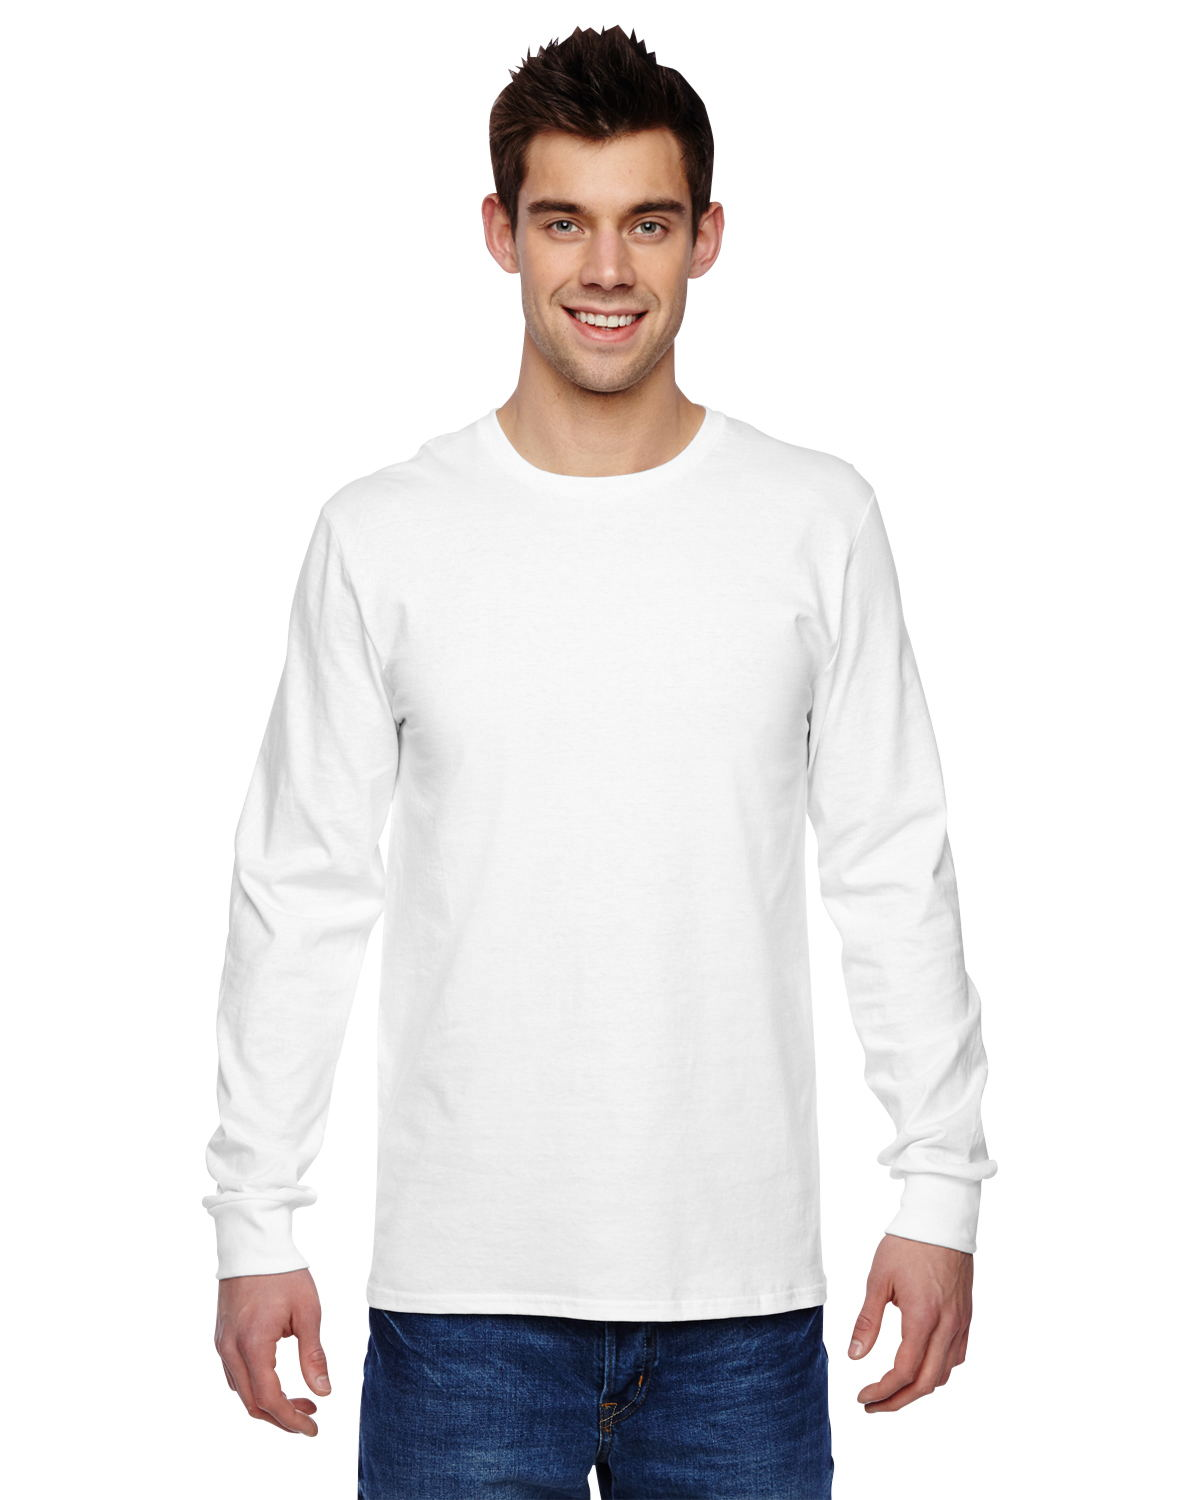 Fruit of the Loom SFLR - 4.7 oz. 100% Sofspun Cotton Jersey Long-Sleeve T-Shirt